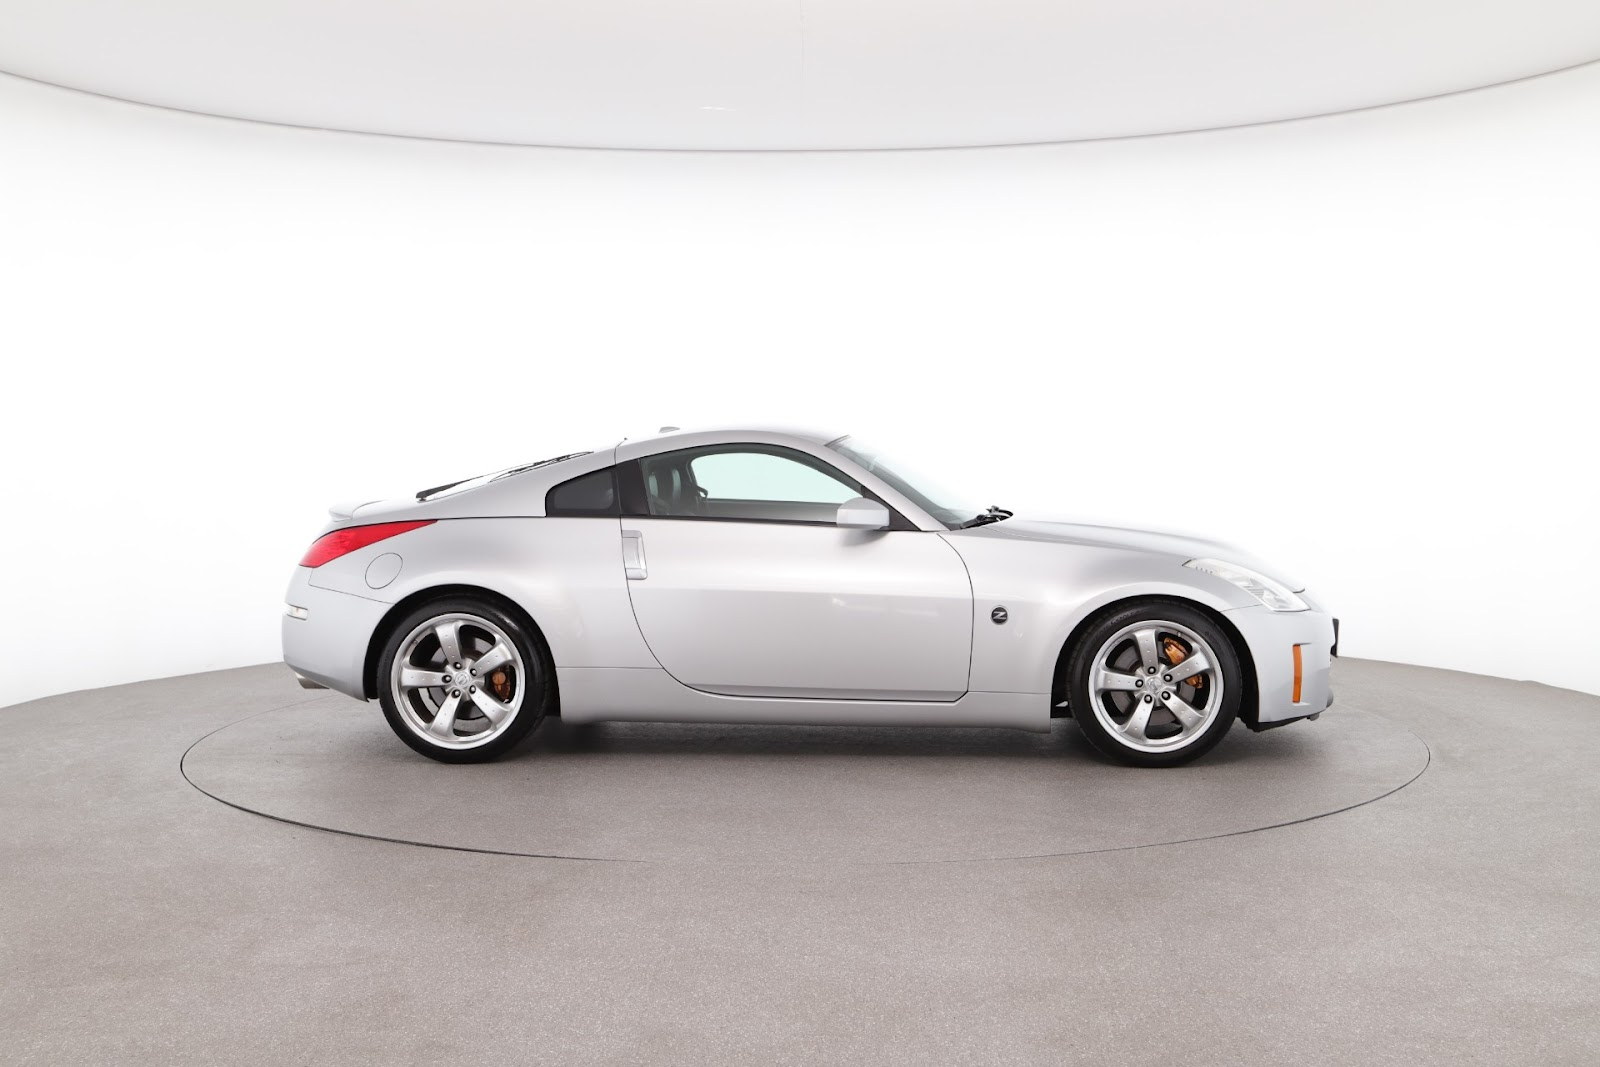 Nissan 350Z Grand touring